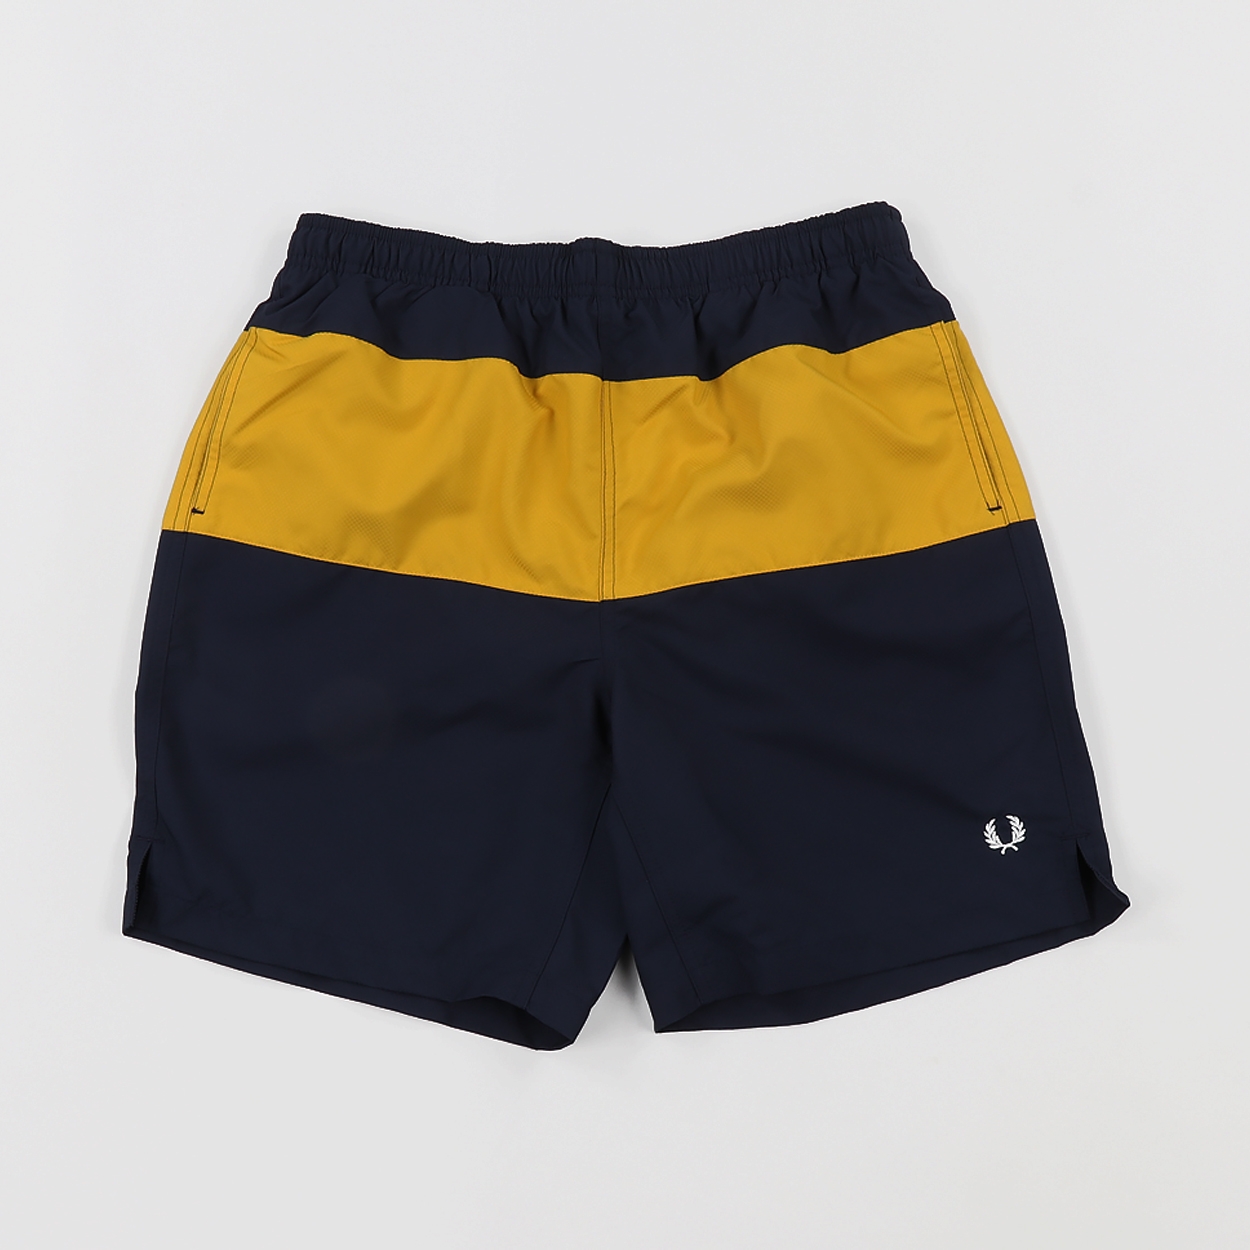 689ac0bd16f94 Fred Perry Mens Sport Panelled Swimming Shorts Navy Blue Yellow £60.00